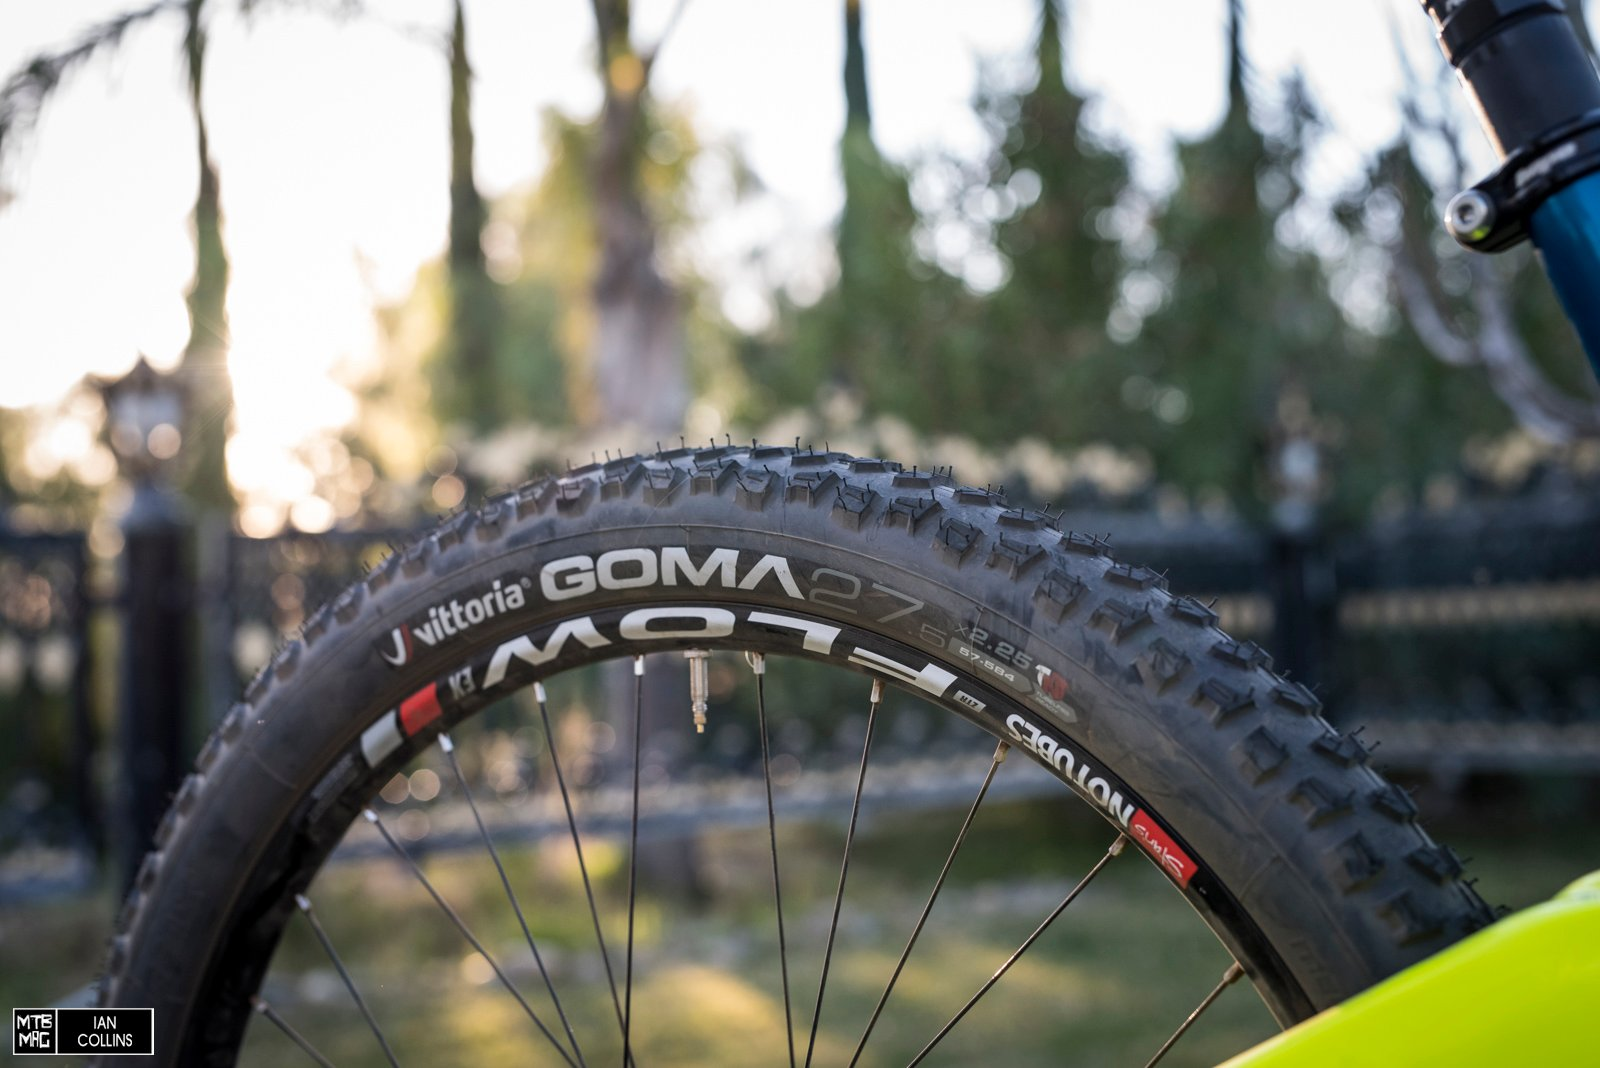 Vittoria is the new tire sponsor for GT's Enduro team. We'll see how they get along, but the riders genuinely seem happy thus far.